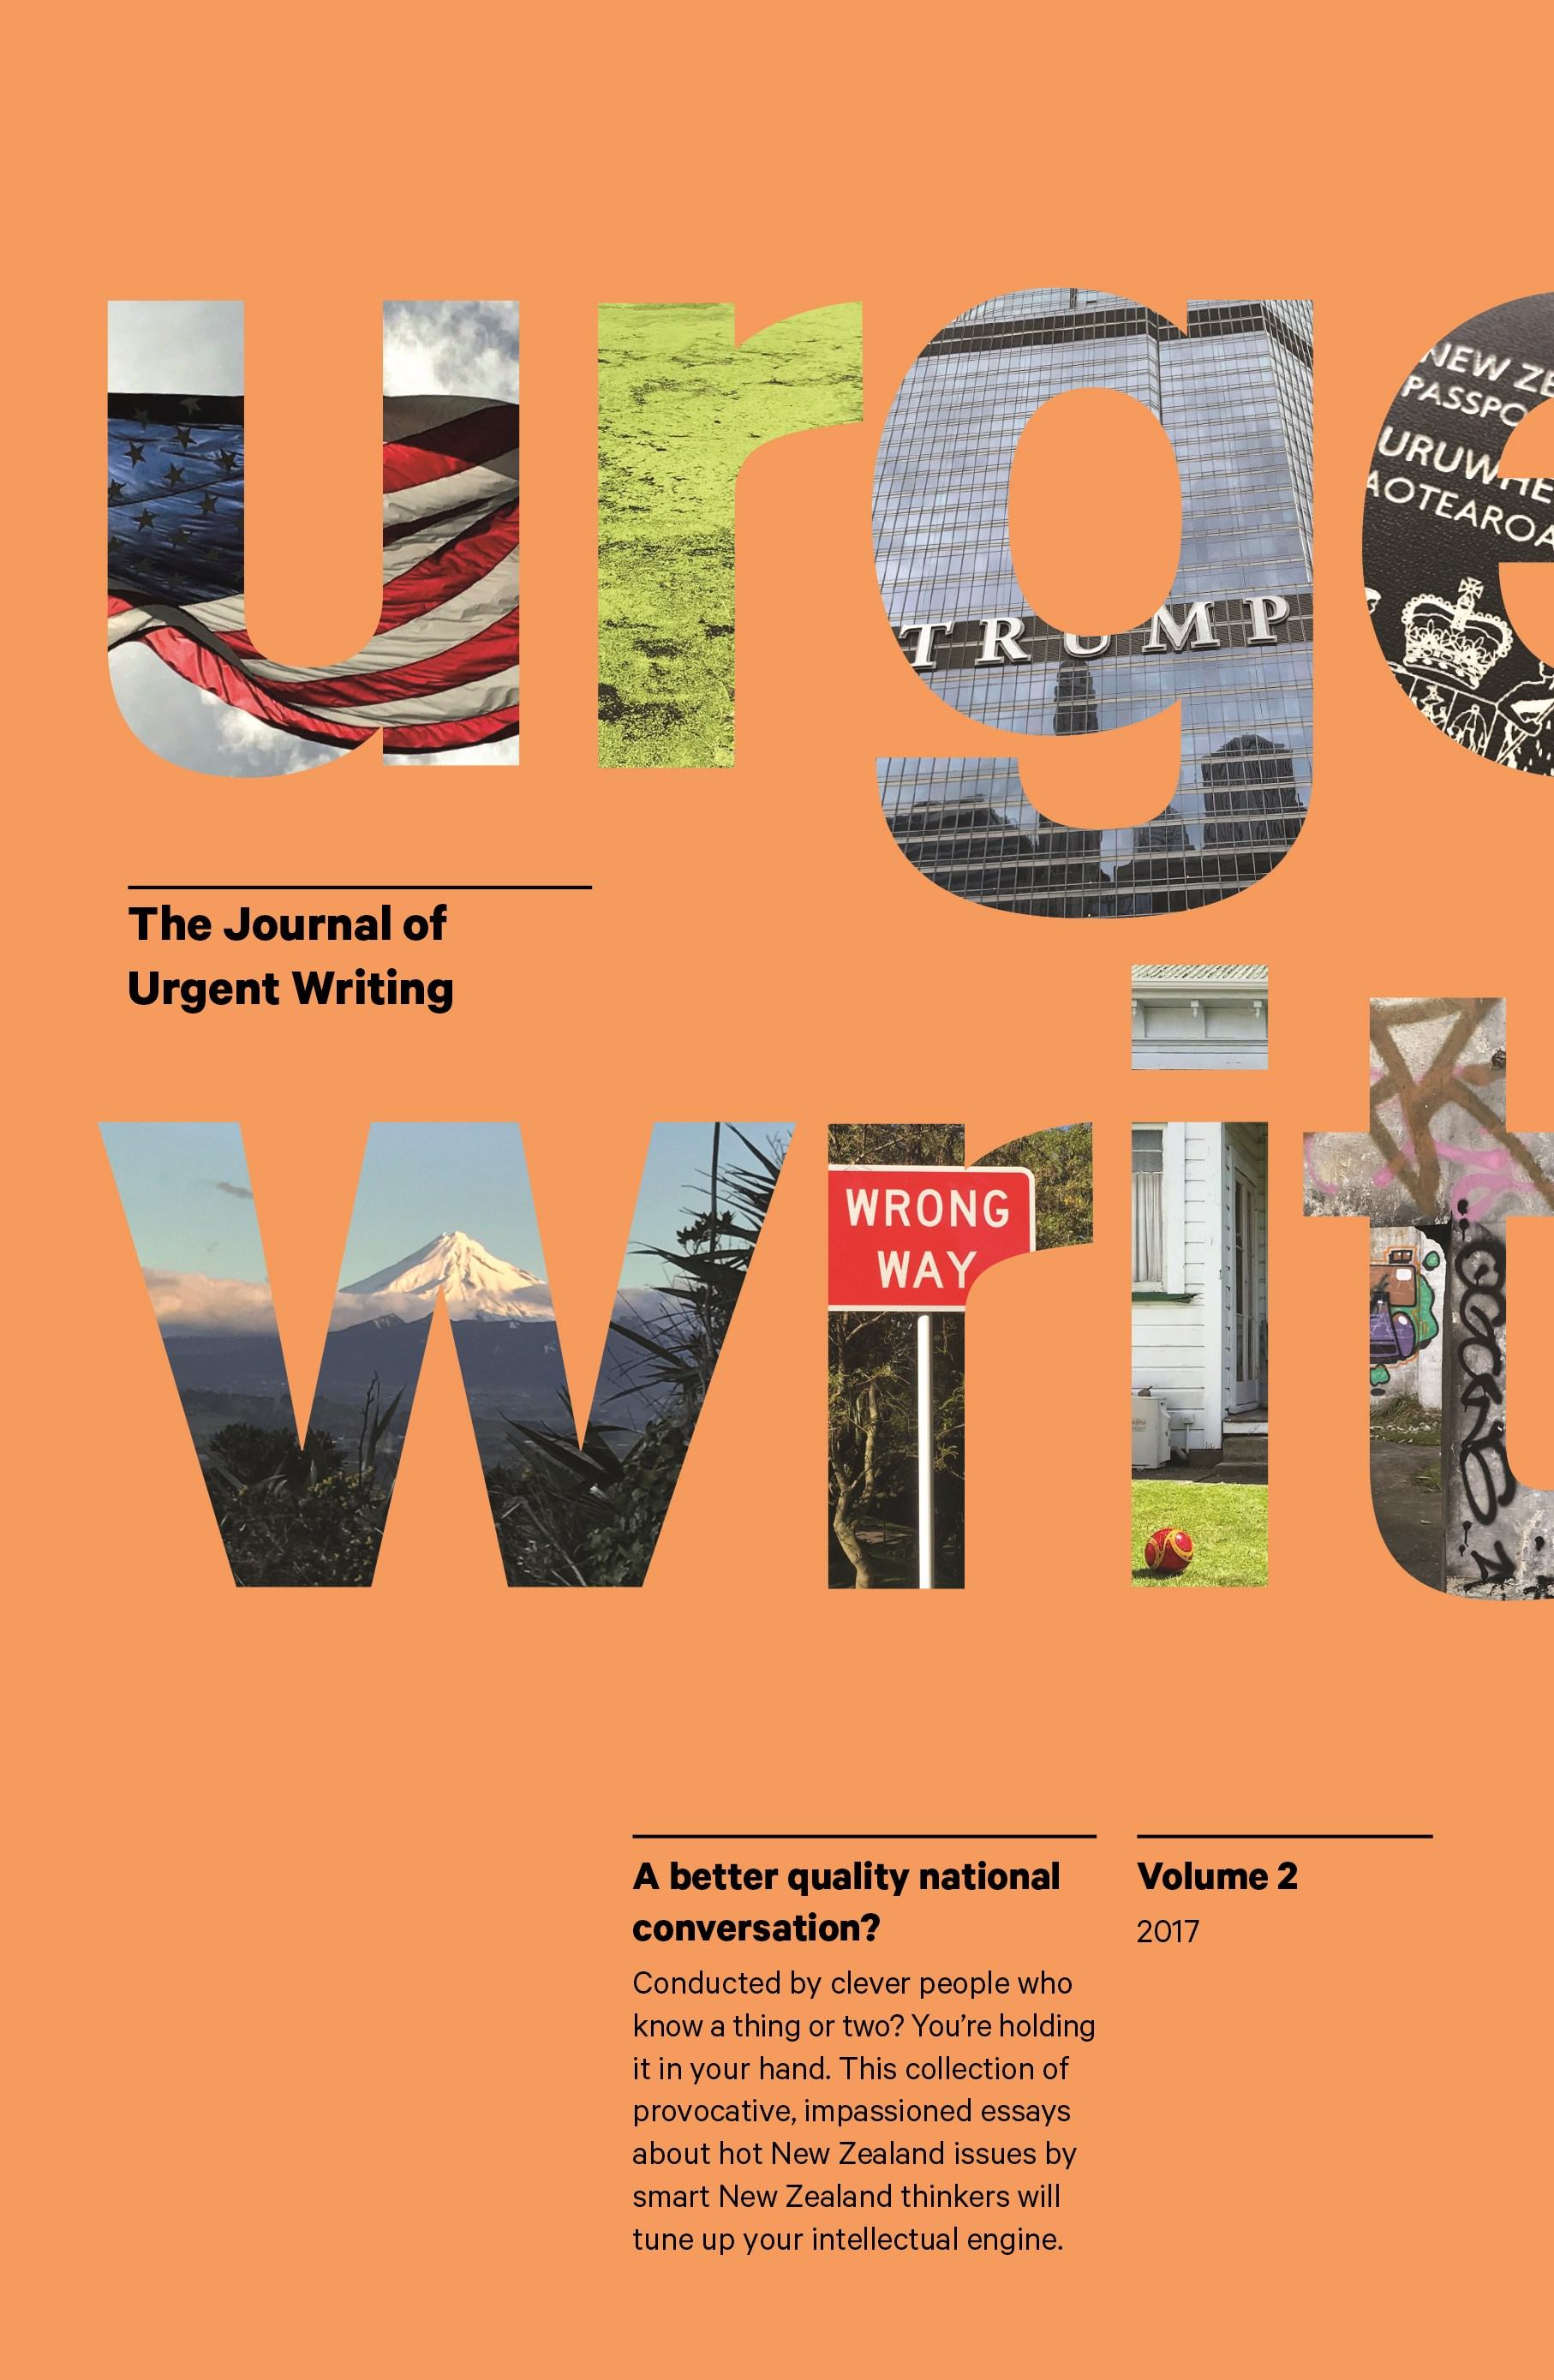 The Journal of Urgent Writing 2017